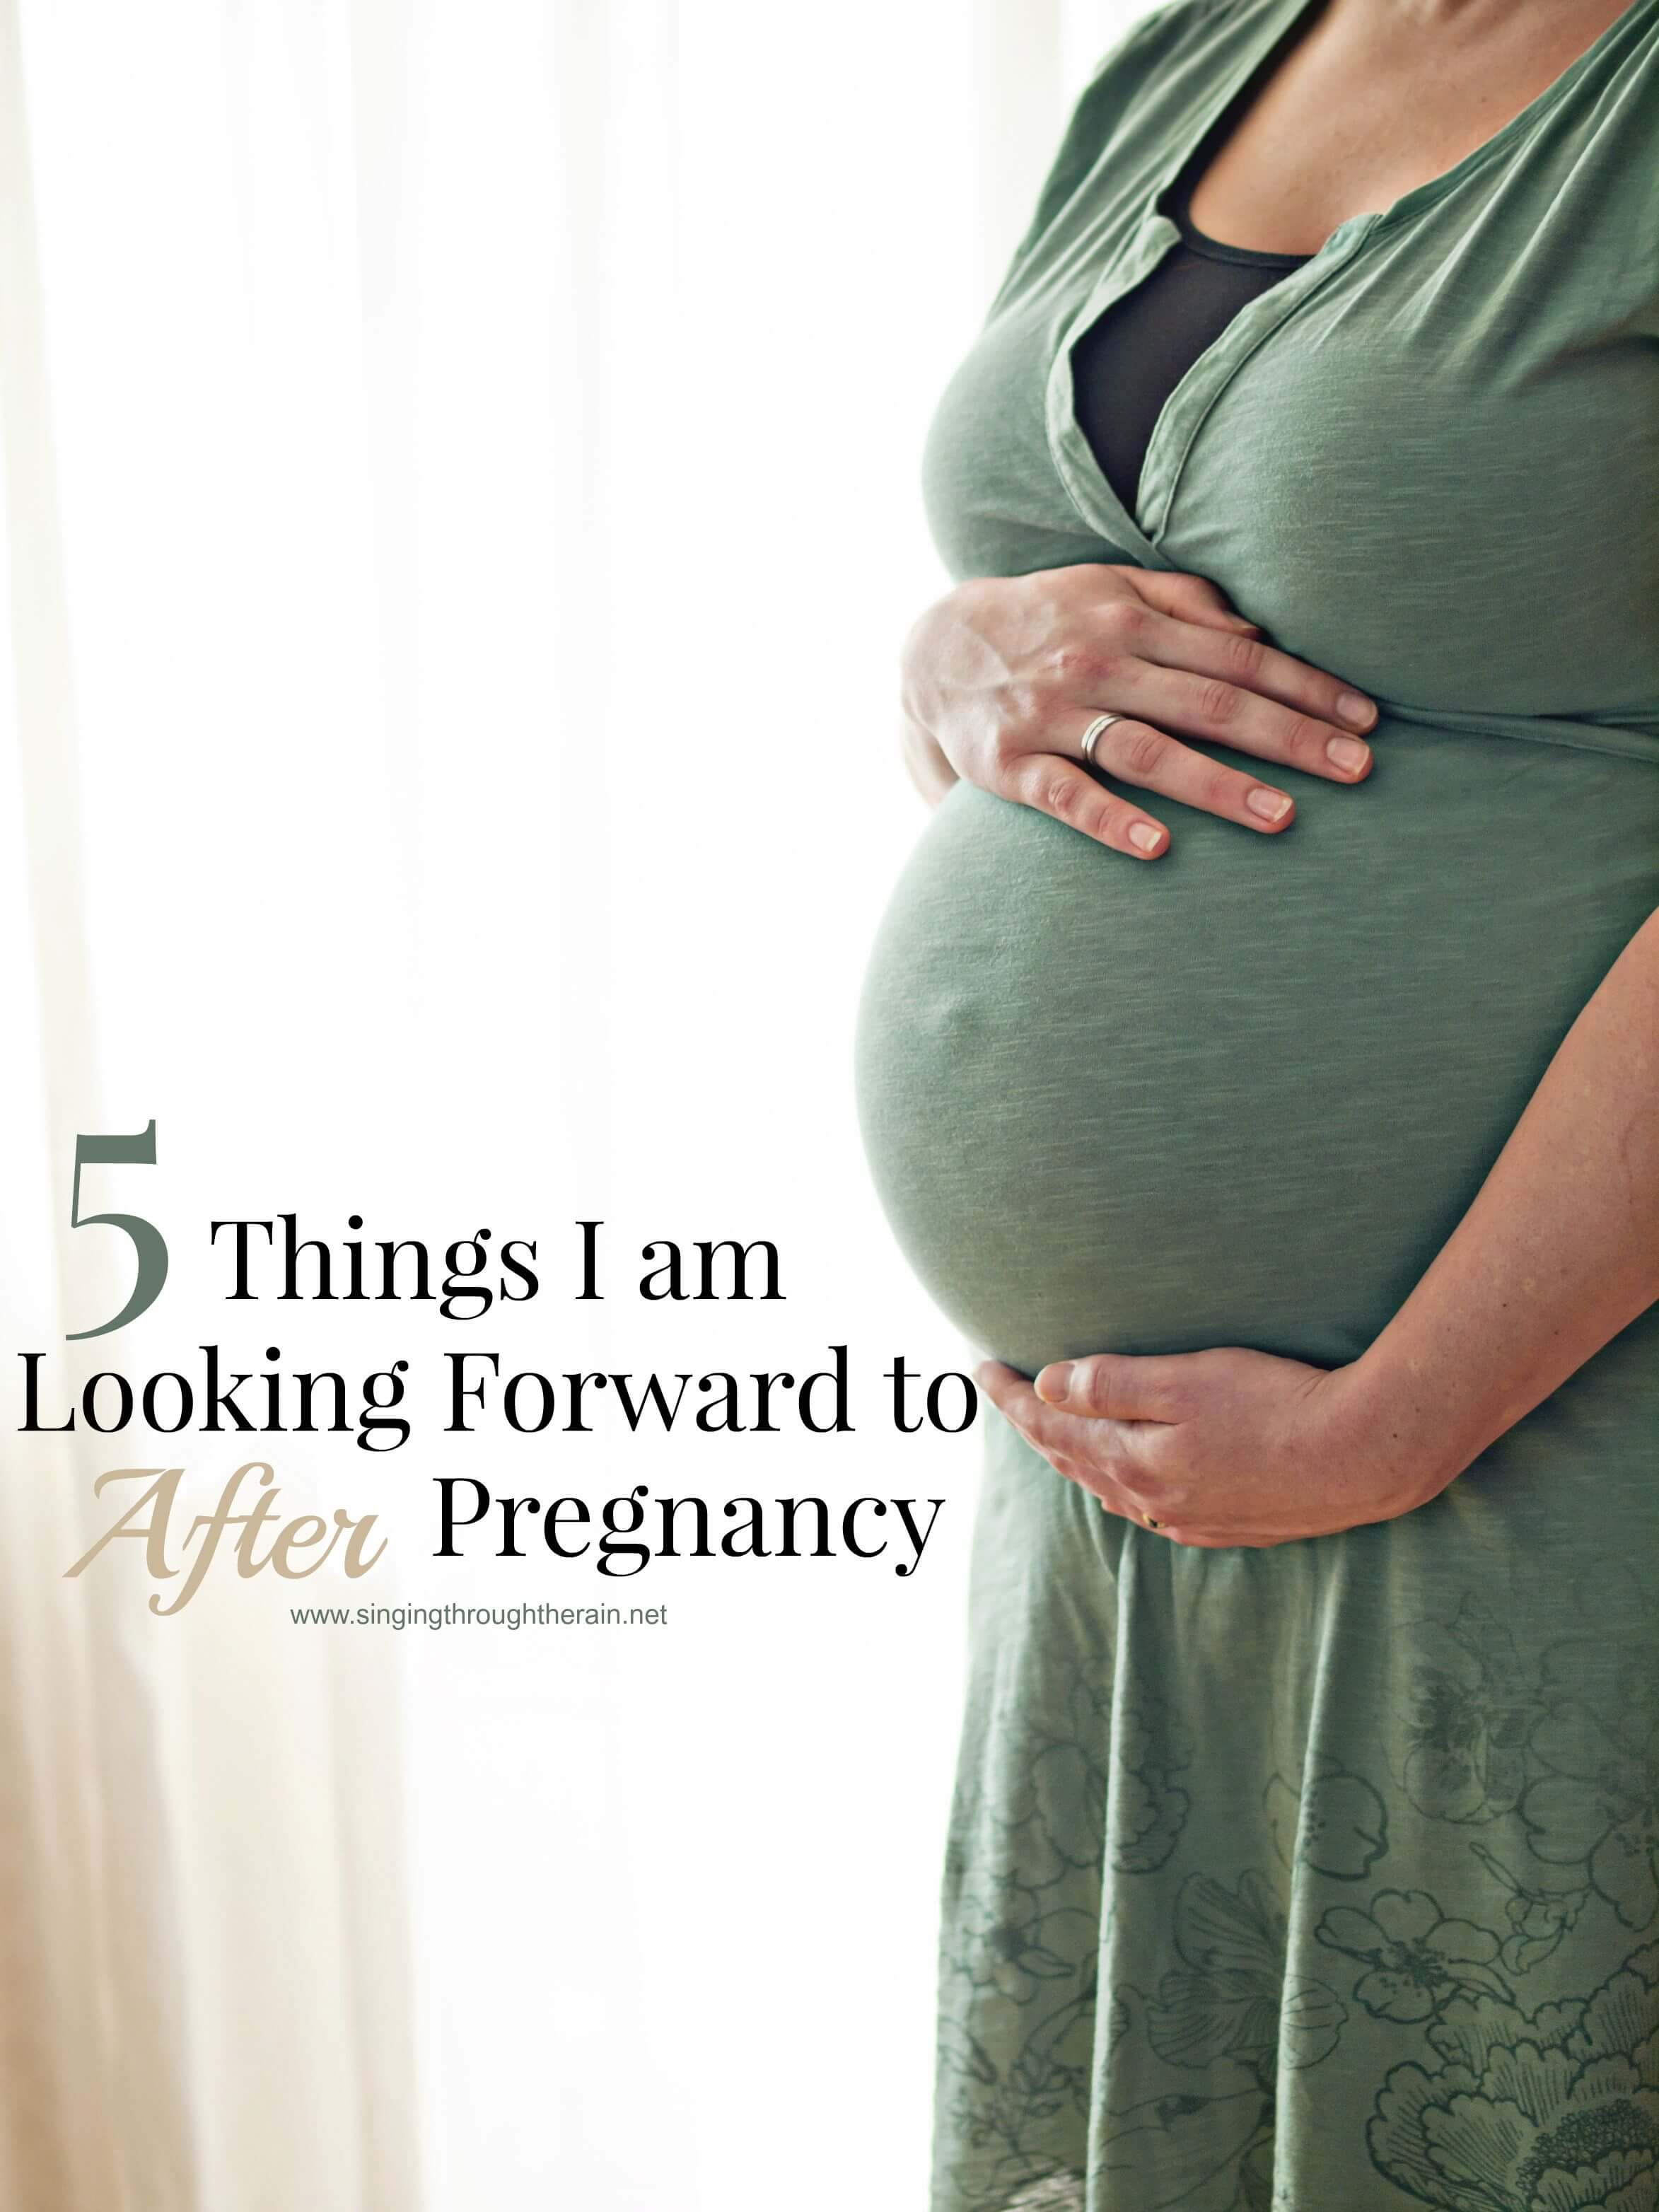 5 Things I am Looking Forward to After Pregnancy